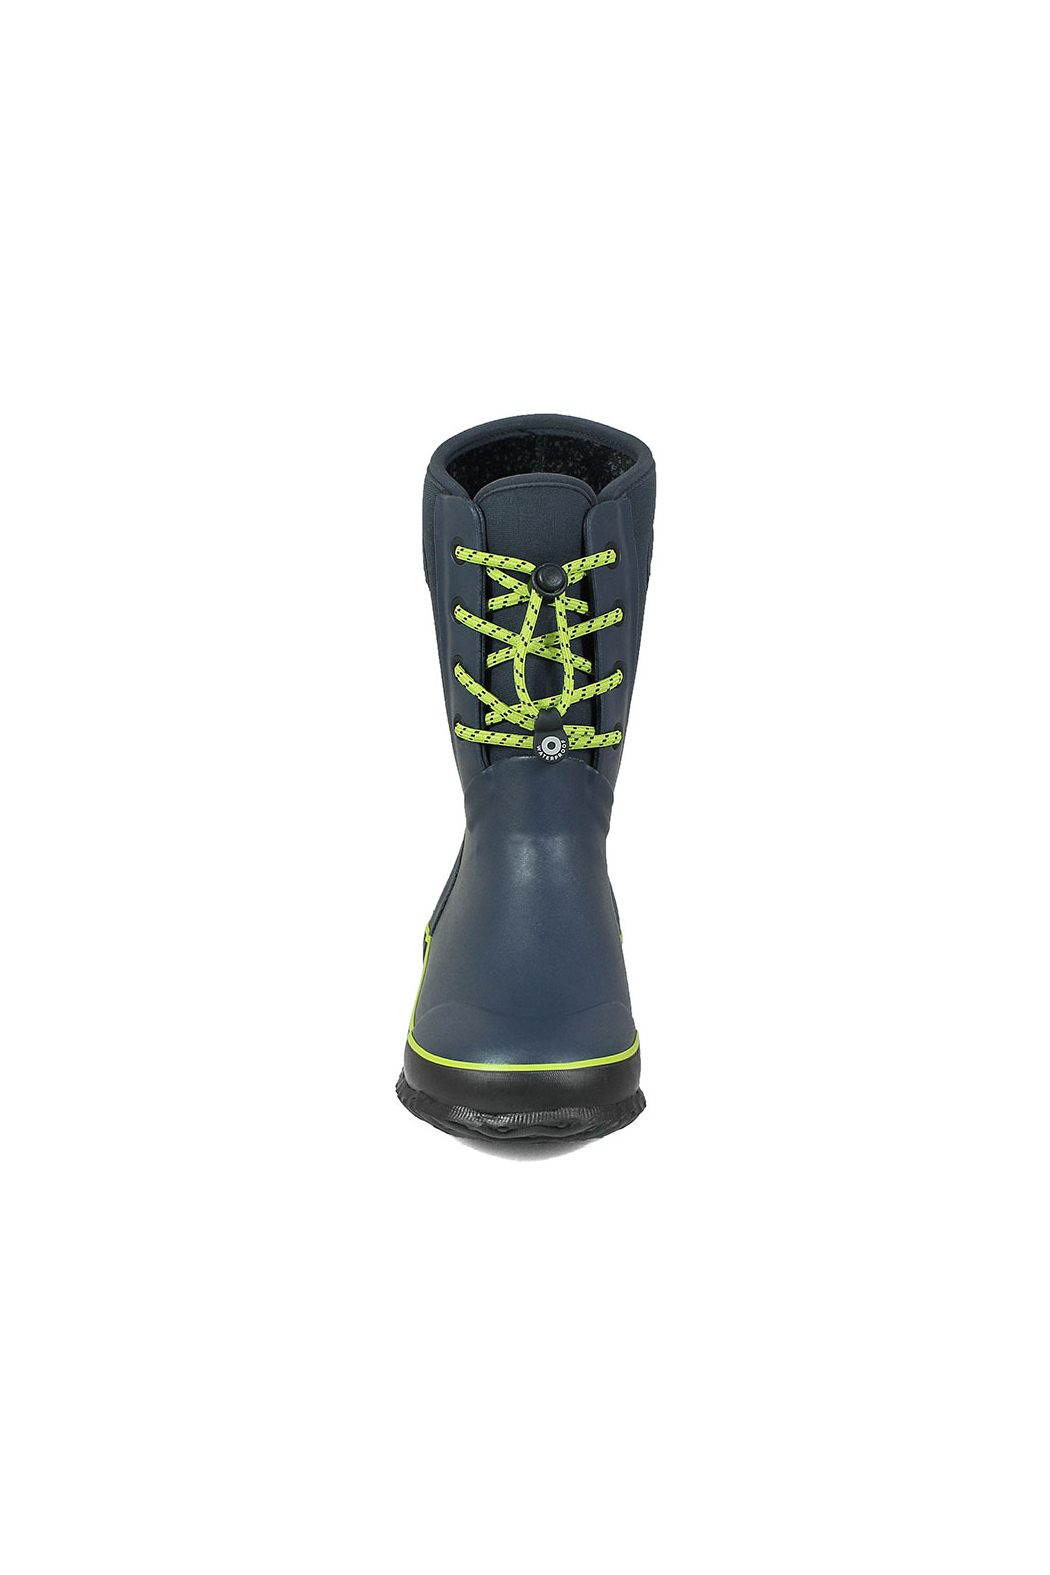 bogs  Arcata Lace Winter Waterproof Boots - Side Cropped Image